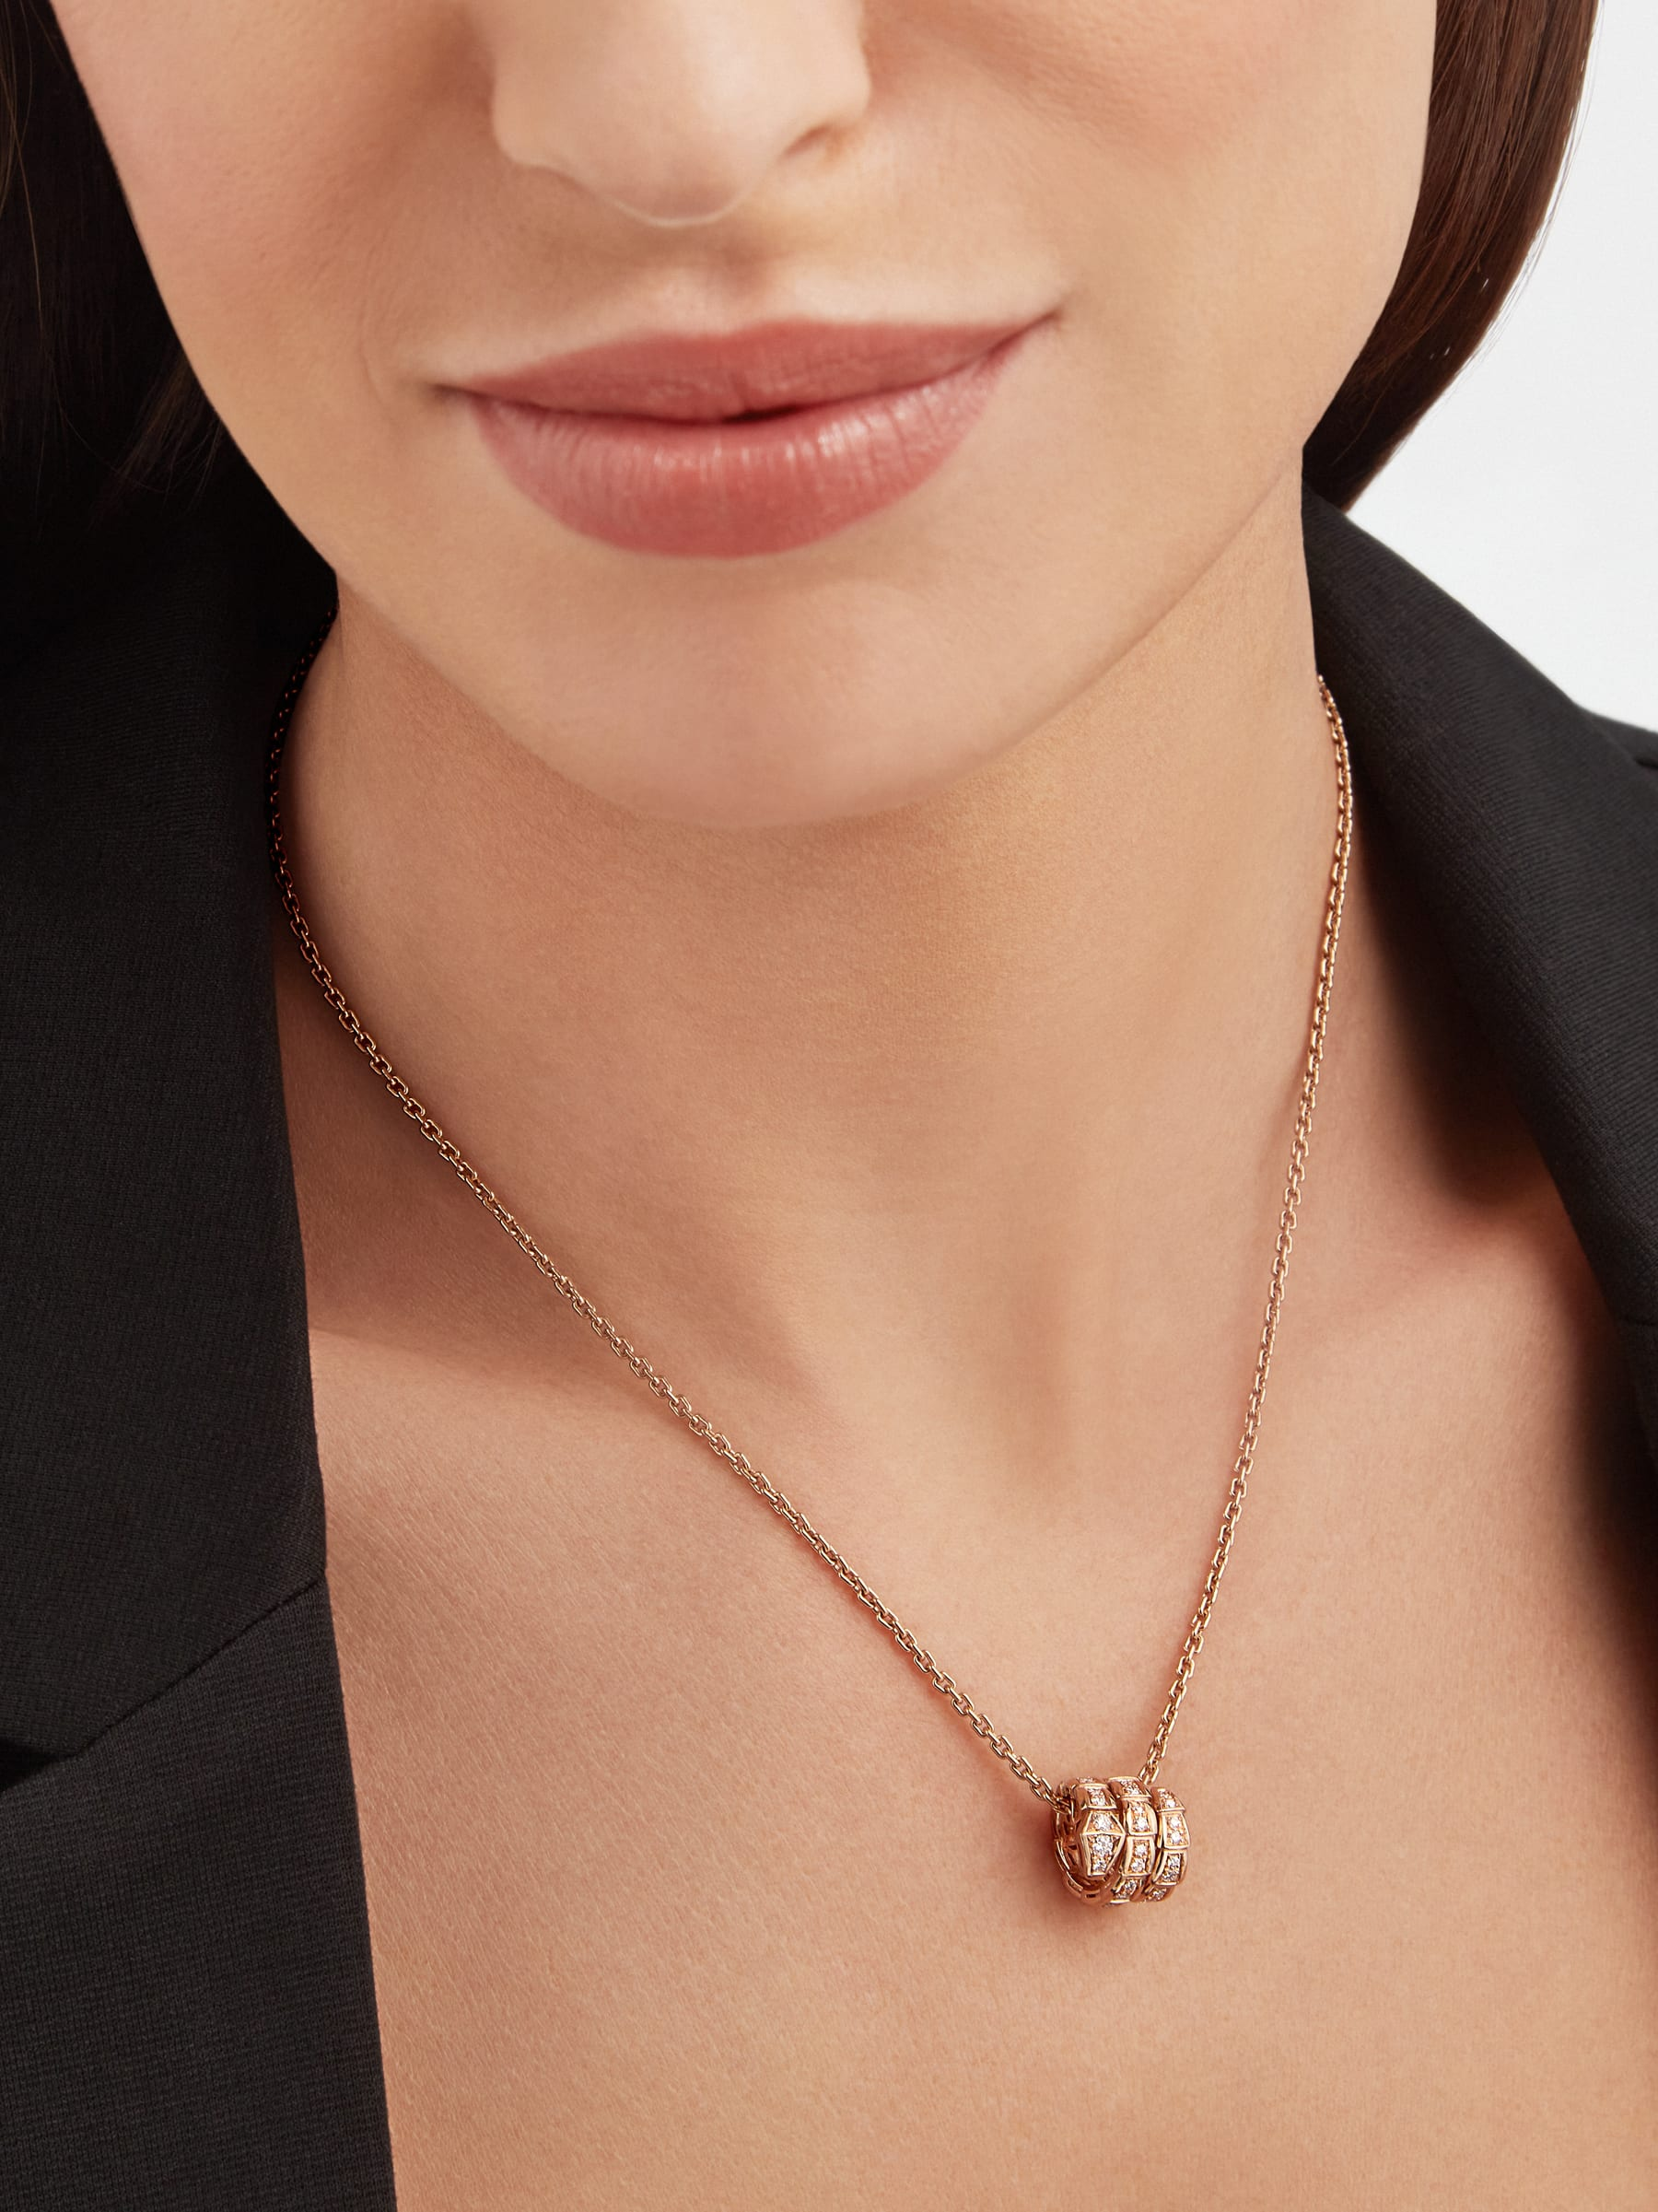 Serpenti Viper pendant necklace in 18 kt rose gold set with pavé diamonds 357795 image 4